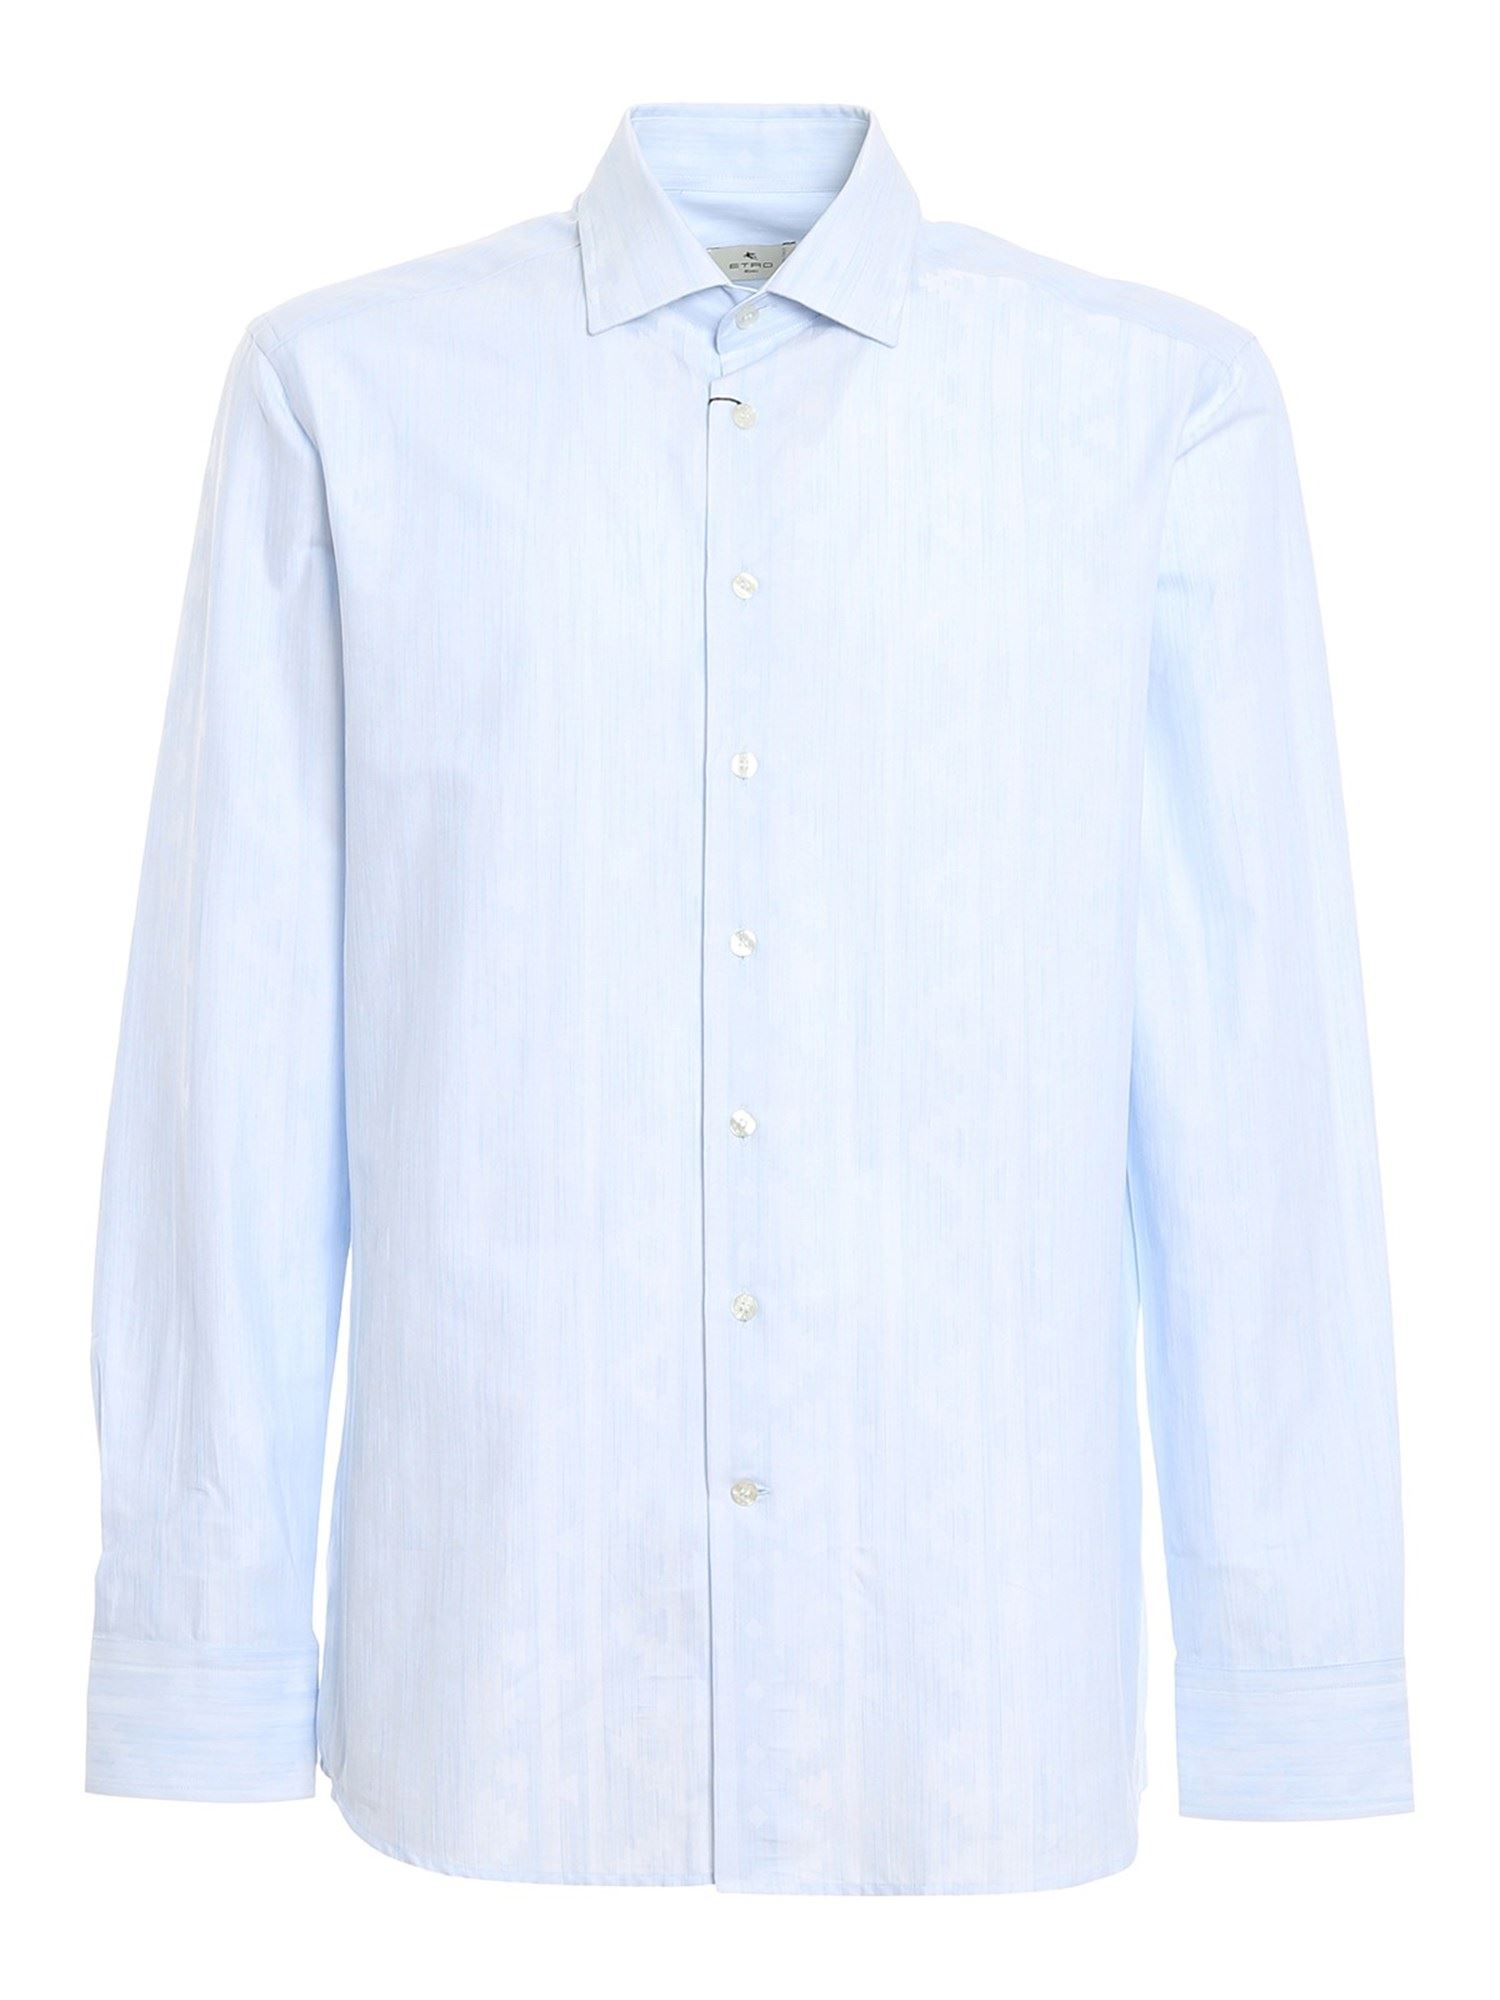 Etro GEOMETRIC NAÏF PATTERNED SHIRT IN LIGHT BLUE